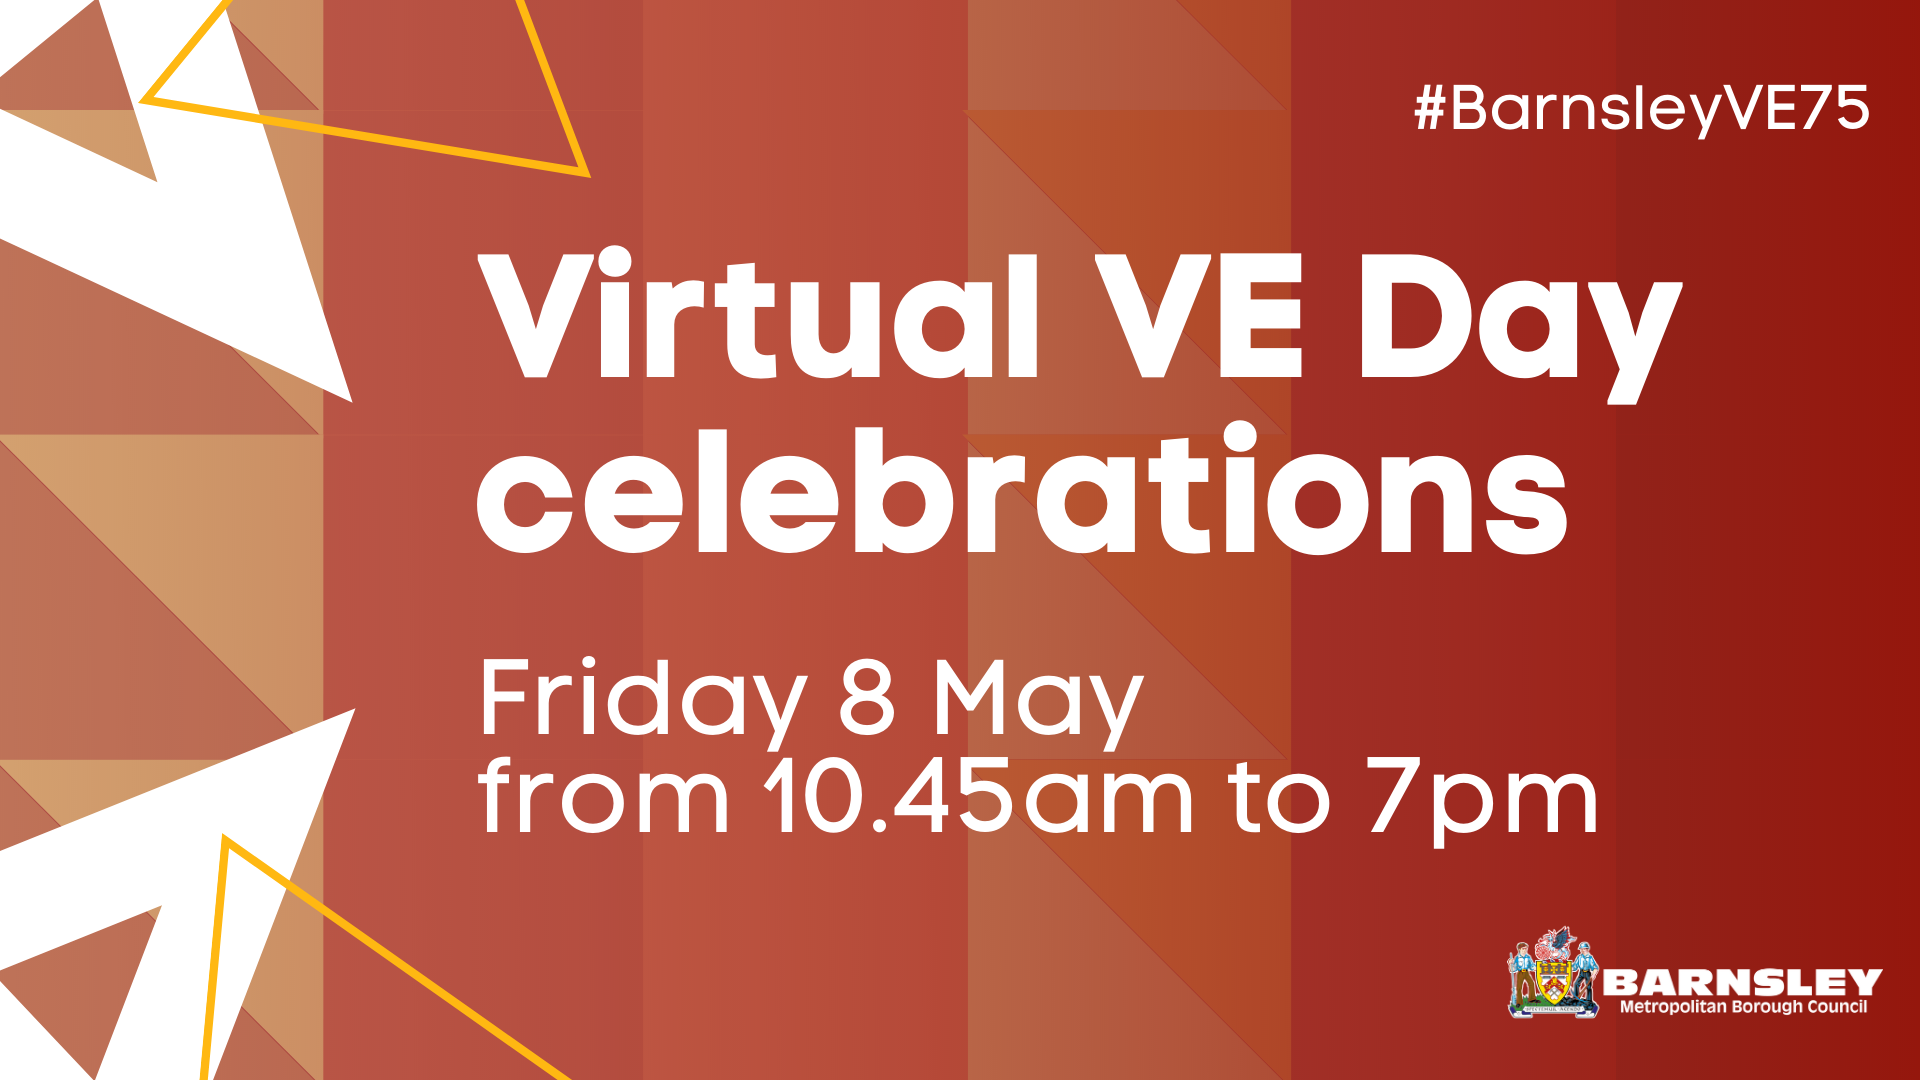 Virtual VE day celebrations Friday 8 May from 10.45am to 7pm